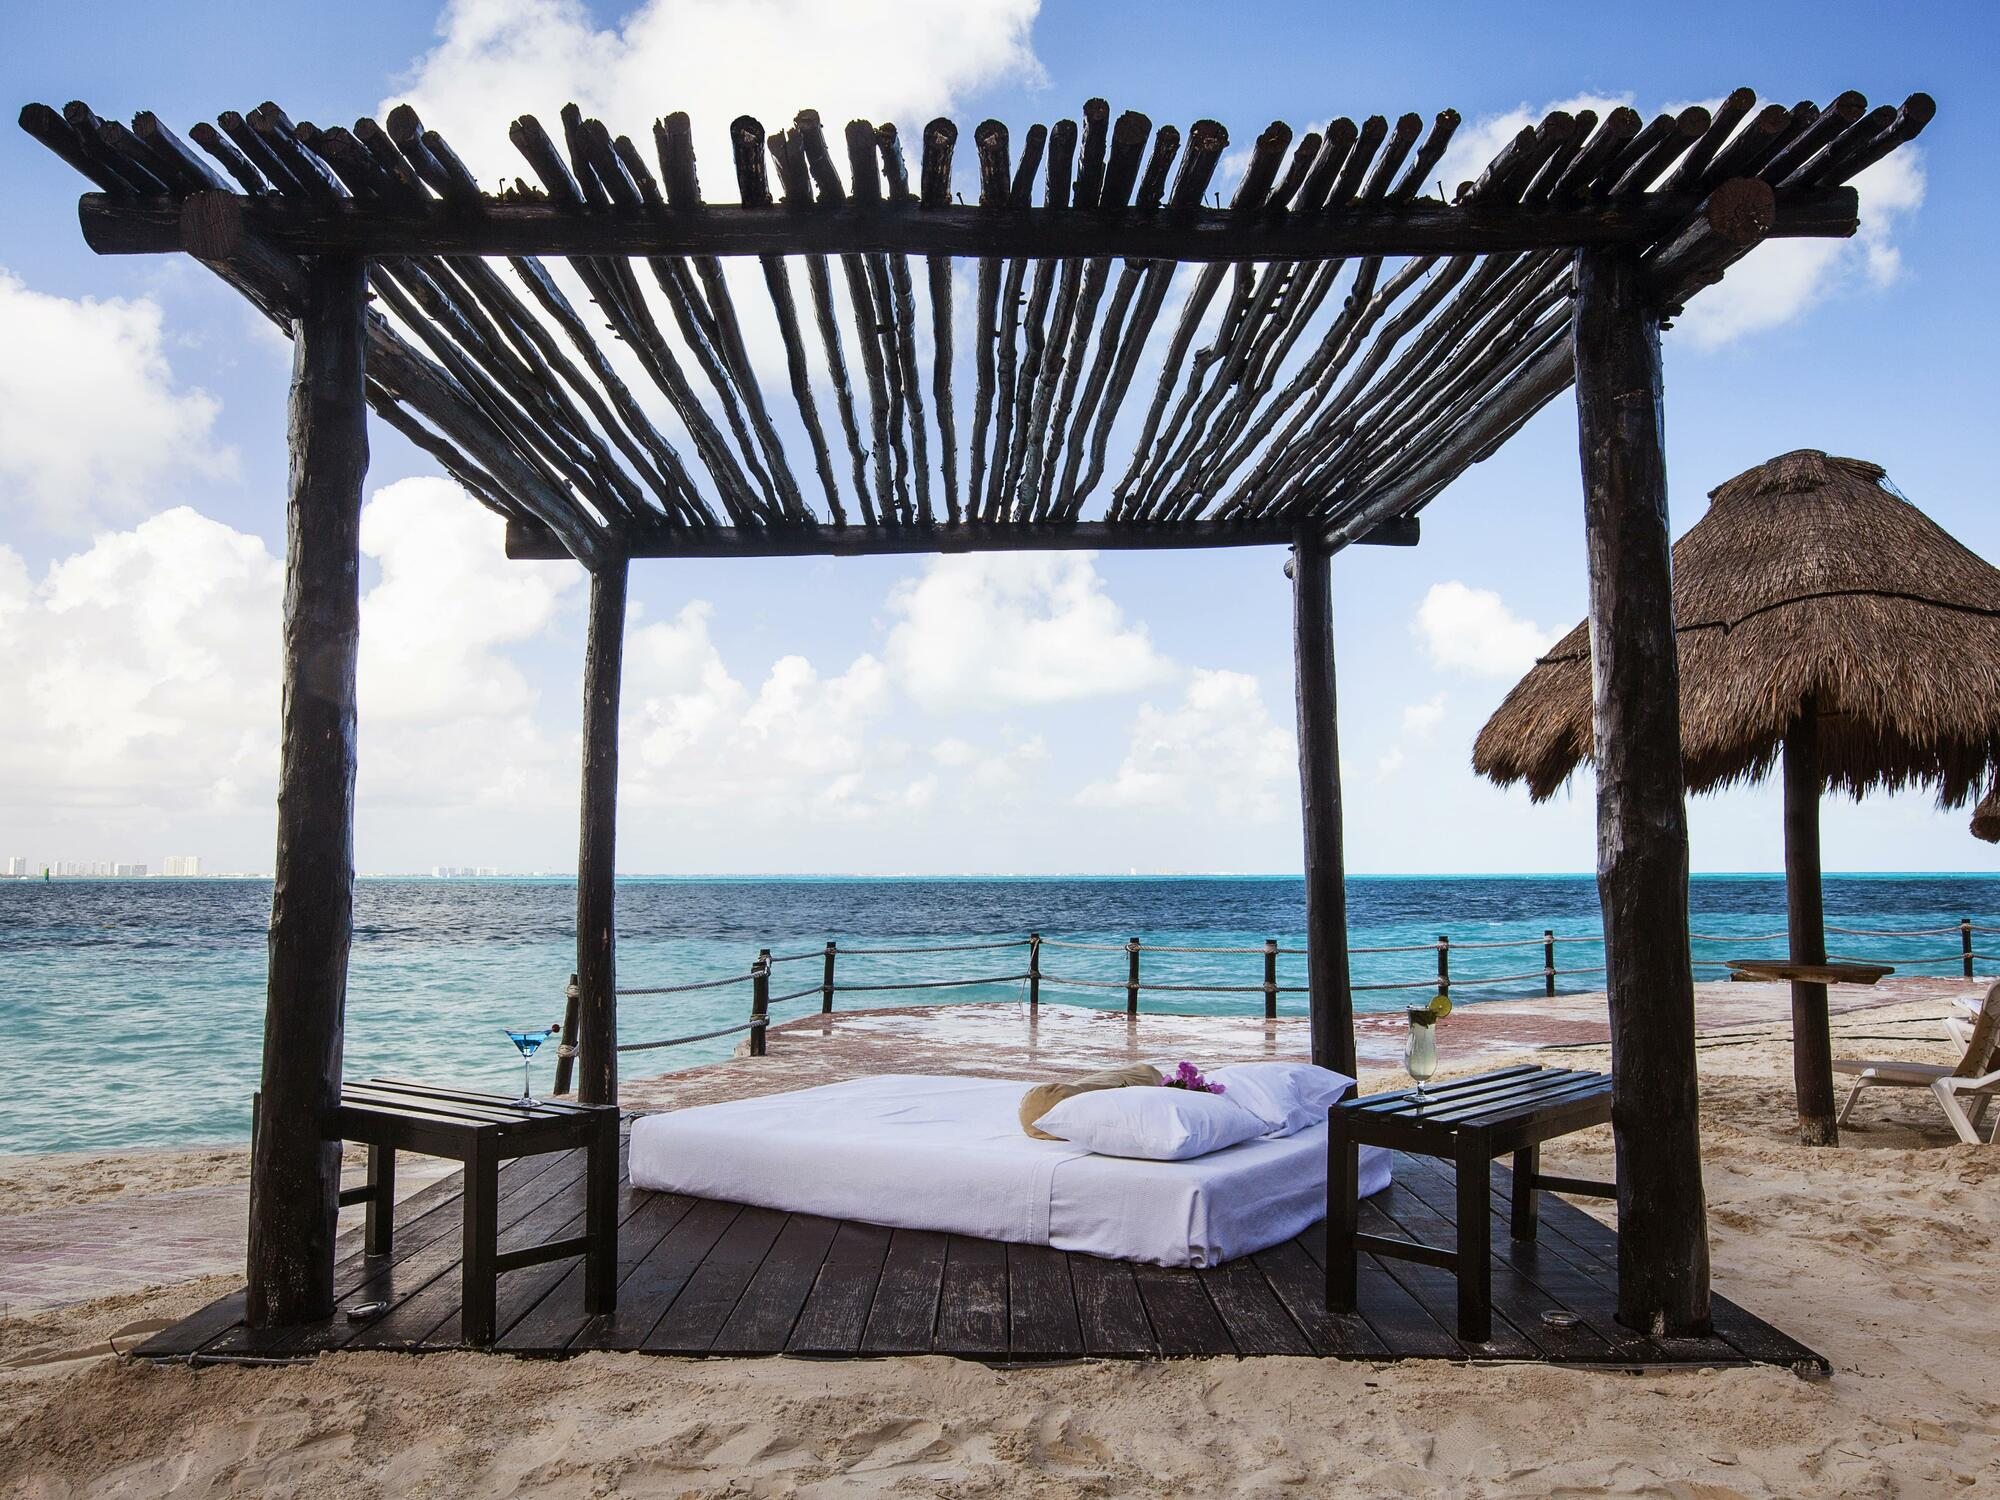 Lounge bed near the ocean in Cancún city